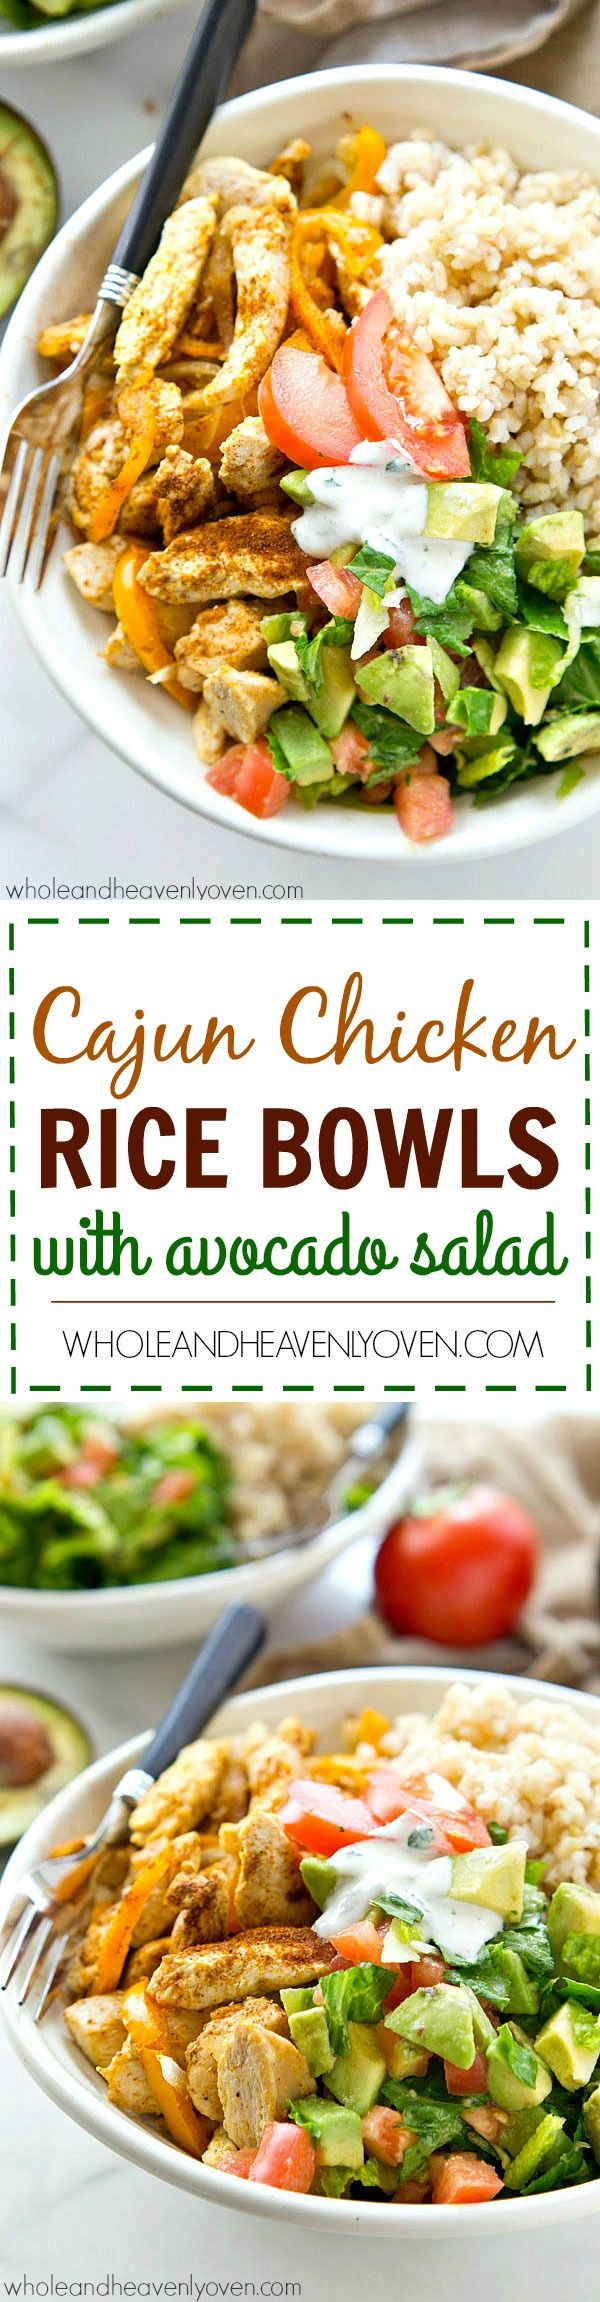 295 best healthy chicken recipes images on pinterest cooking food zippy cajun rubbed chicken hot rice and an amazing fresh avocado salad come together in these beautiful and easy to throw together healthy rice bowls forumfinder Image collections